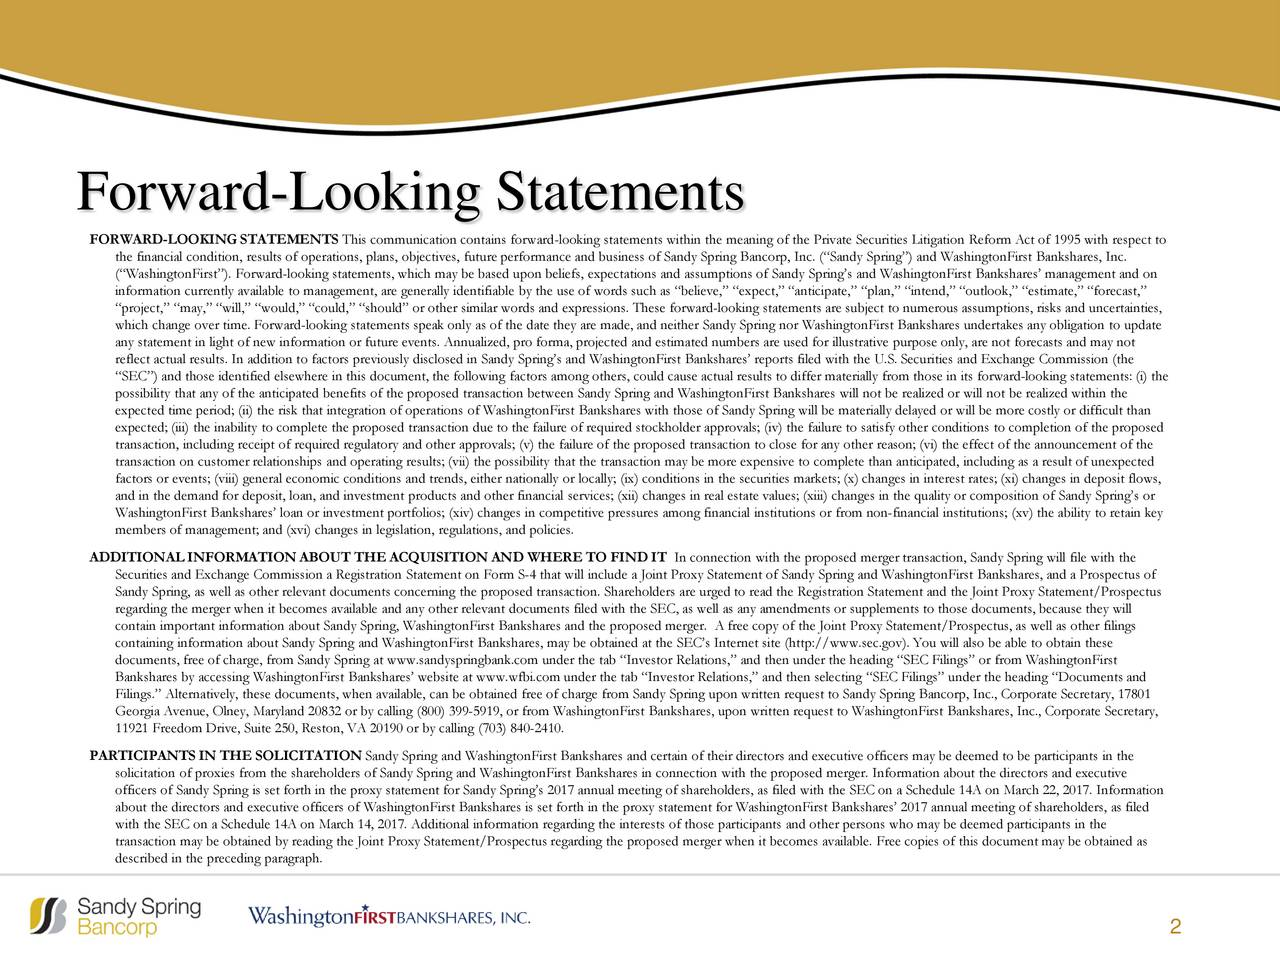 FORWARD-LOOKING STATEMENTS This communication contains forward-looking statements within the meaning of the Private Securities Litigation Reform Act of 1995 with respect to the financial condition, results of operations, plans, objectives, future performance and business of Sandy SpringBancorp, Inc. (Sandy Spring) and WashingtonFirst Bankshares, Inc. (WashingtonFirst). Forward-looking statements, which may be based upon beliefs, expectations and assumptions of Sandy Springs and WashingtonFirstBankshares management and on information currently available to management, are generally identifiable by the use of words such as believe, expect, anticipate, plan, intend, outlook, estimate, forecast, project, may, will, would, could, should or other similar words and expressions. These forward-looking statements are subject to numerous assumptions, risks and uncertainties, which change over time. Forward-looking statements speak only as of the date they are made, and neither Sandy Spring nor WashingtonFirst Bankshares undertakes any obligation to update any statement in light of new information or future events. Annualized, pro forma, projected and estimated numbefr illustrative purpose only, are not forecasts and may not reflect actual results. In addition to factors previously disclosed in Sandy Springs and WashingtonFirst Bankshares reports filed with the U.S. Securities and Exchange Commission (the SEC) and those identified elsewhere in this document, the following factors among others, could cause actual results to differ materially from those in its forward-looking statements: (i) the possibility that any of the anticipated benefits of the proposed transaction between Sandy Spring and WashingtonFirst Bankshareswill not be realized or will not be realized within the expected time period; (ii) the risk that integration of operations of WashingtonFirst Bankshares with those of Sandy Spring will be materially delayed or will be more costly or difficult than expected; (iii)